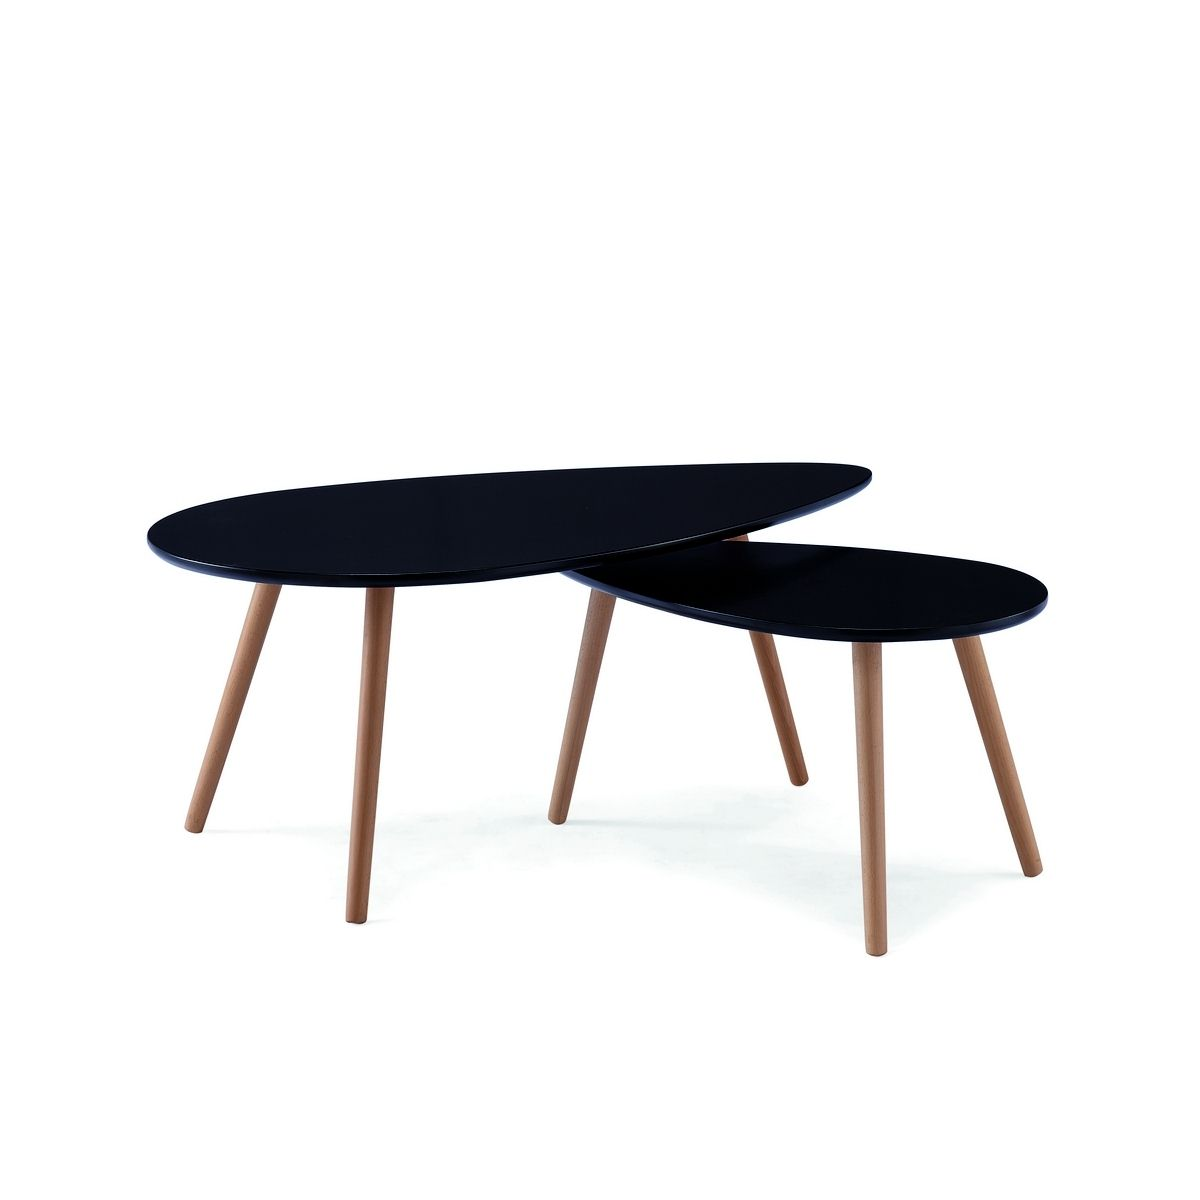 deco in paris 9 table basse scandinave noir avesta avesta table base noir. Black Bedroom Furniture Sets. Home Design Ideas